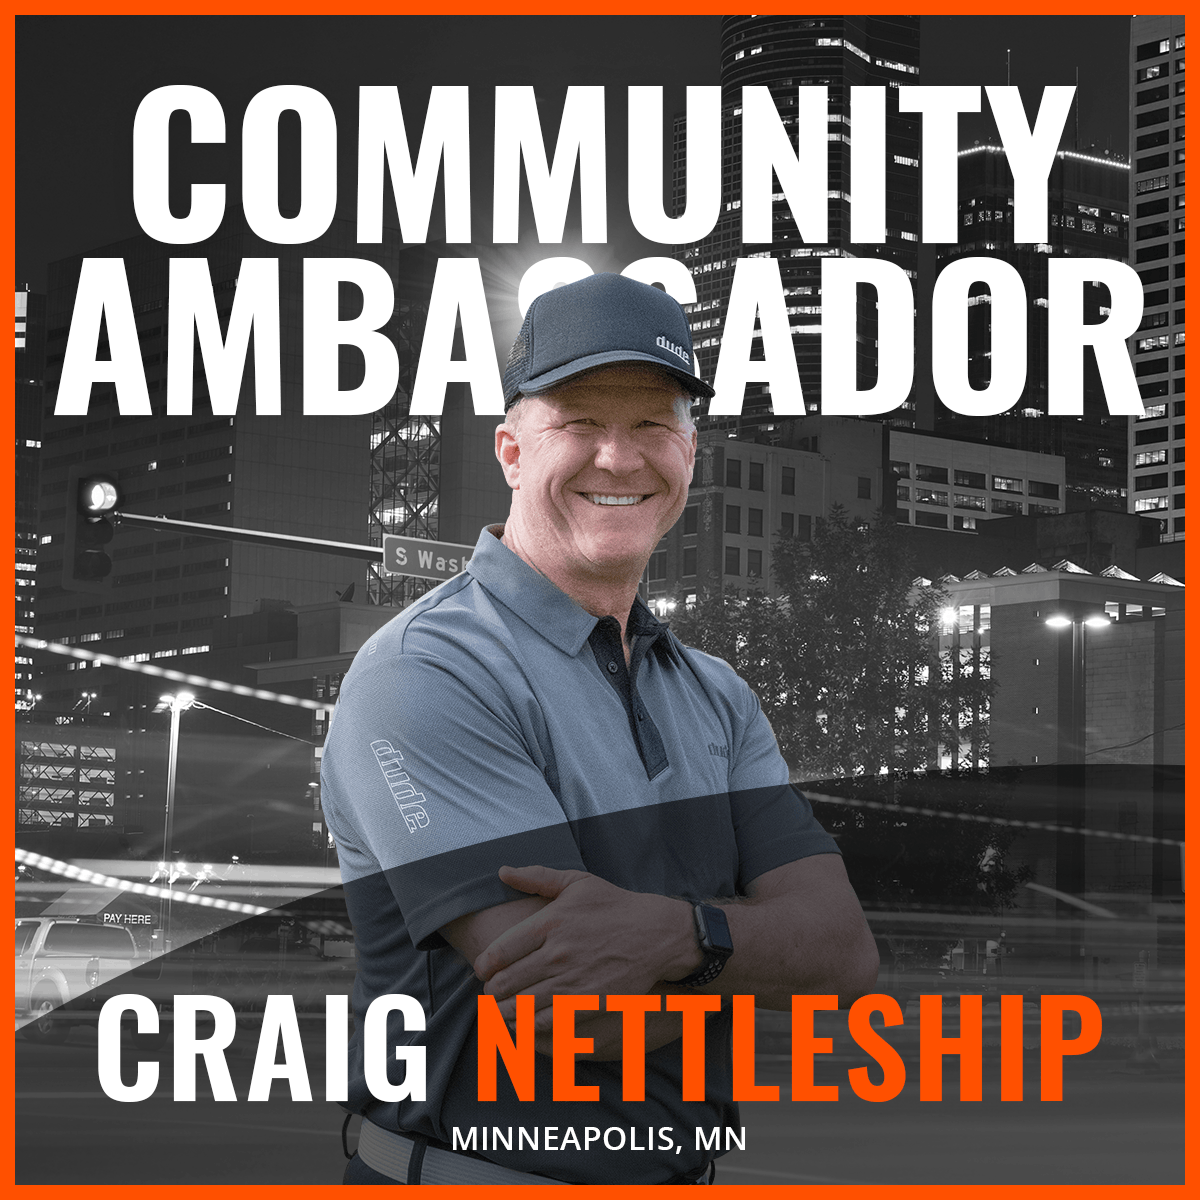 An Image of Craig Nettleship Dude Clothing Community Ambassador